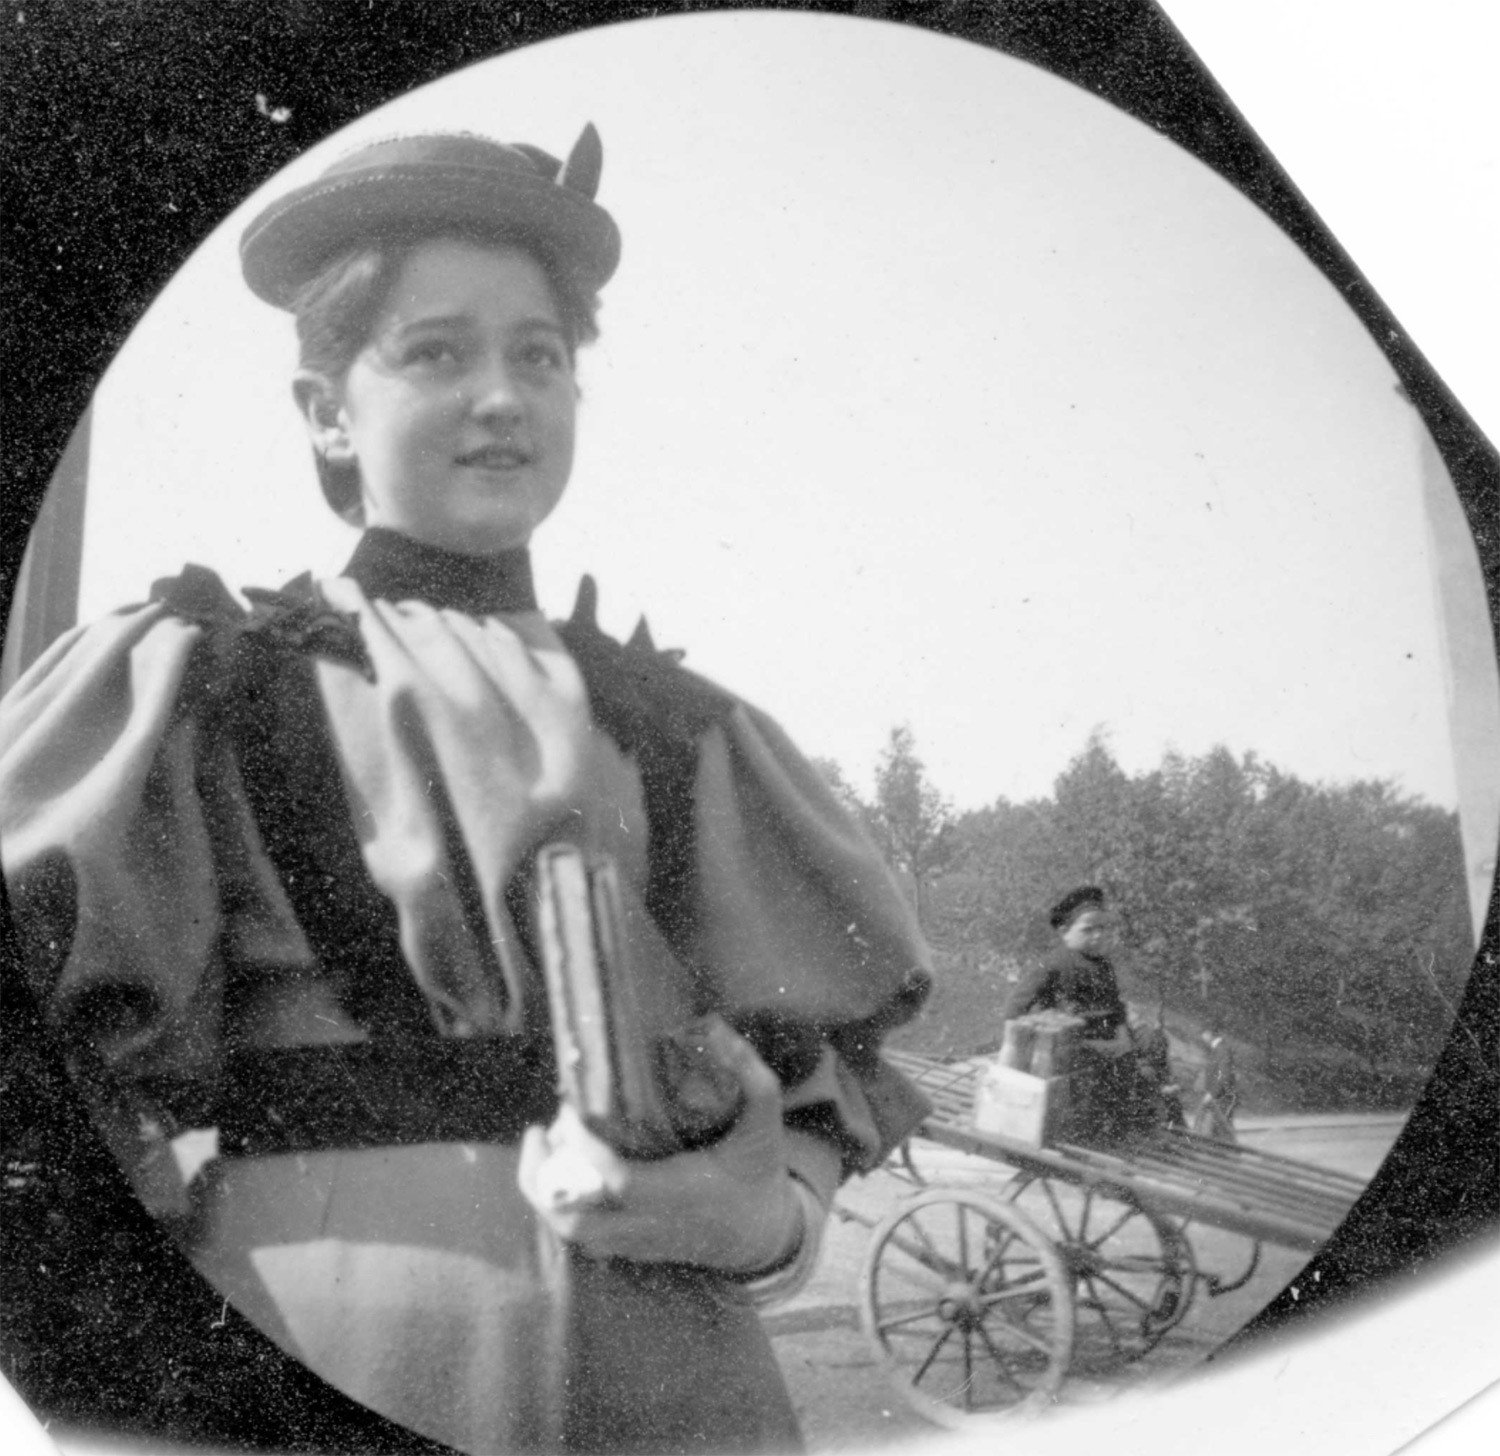 Girl in fancy hat & long dress carrying book with boy on a tipped cart in the background.